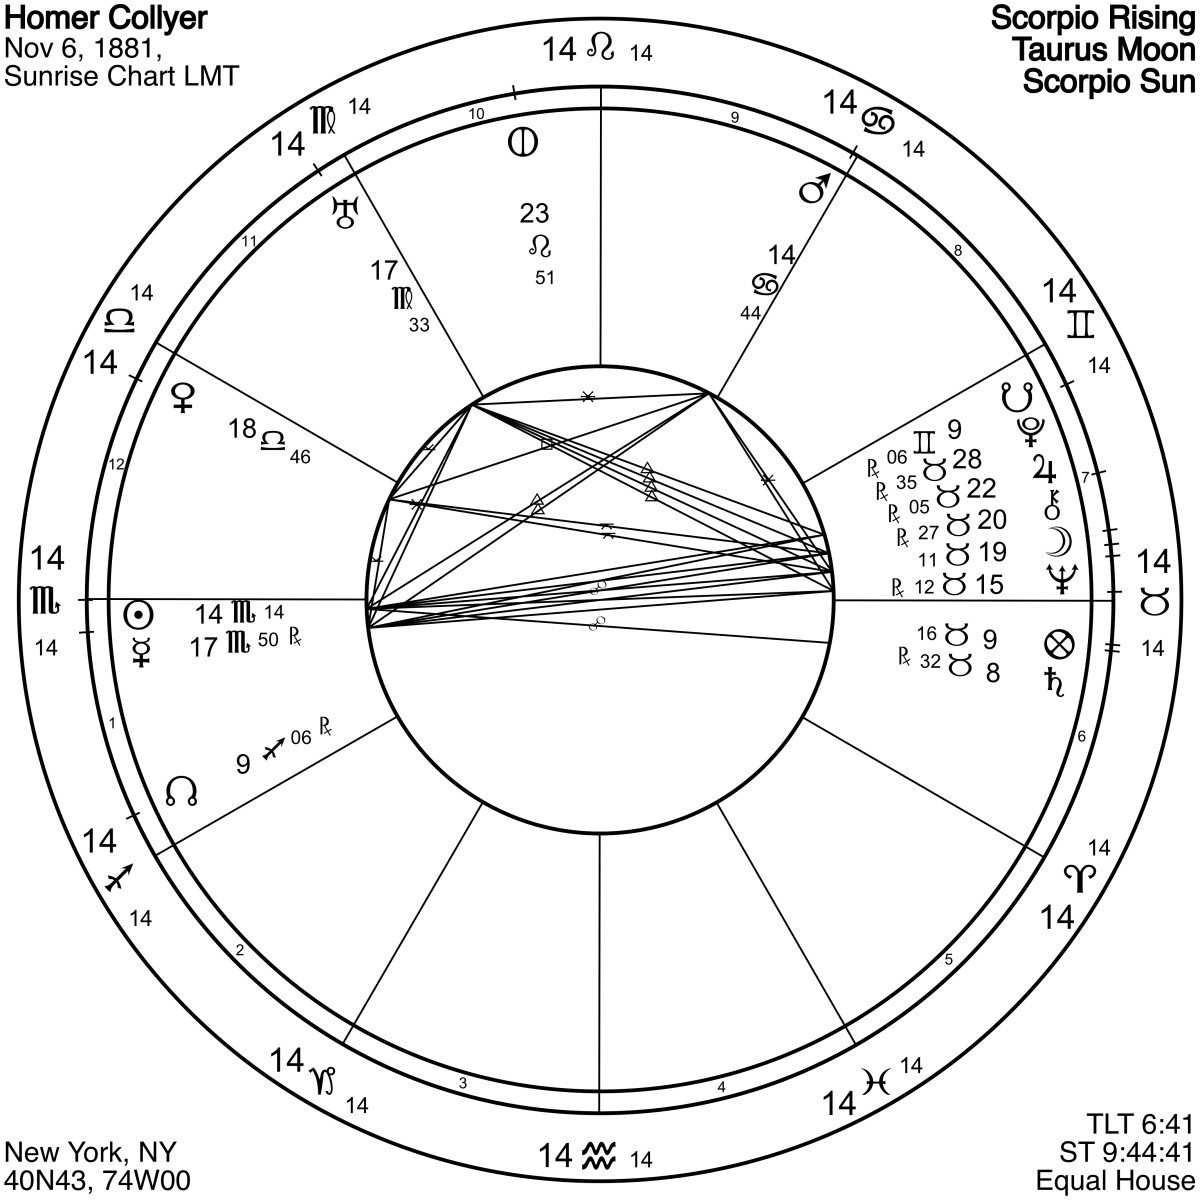 Homer Collyer's astrological chart is spring-loaded with Taurus planets (at the 3 o'clock position) opposing his Scorpio Sun (at the 9 o'clock position). Conflict and frustration ended in isolation and dependence. Sunrise is a default time.